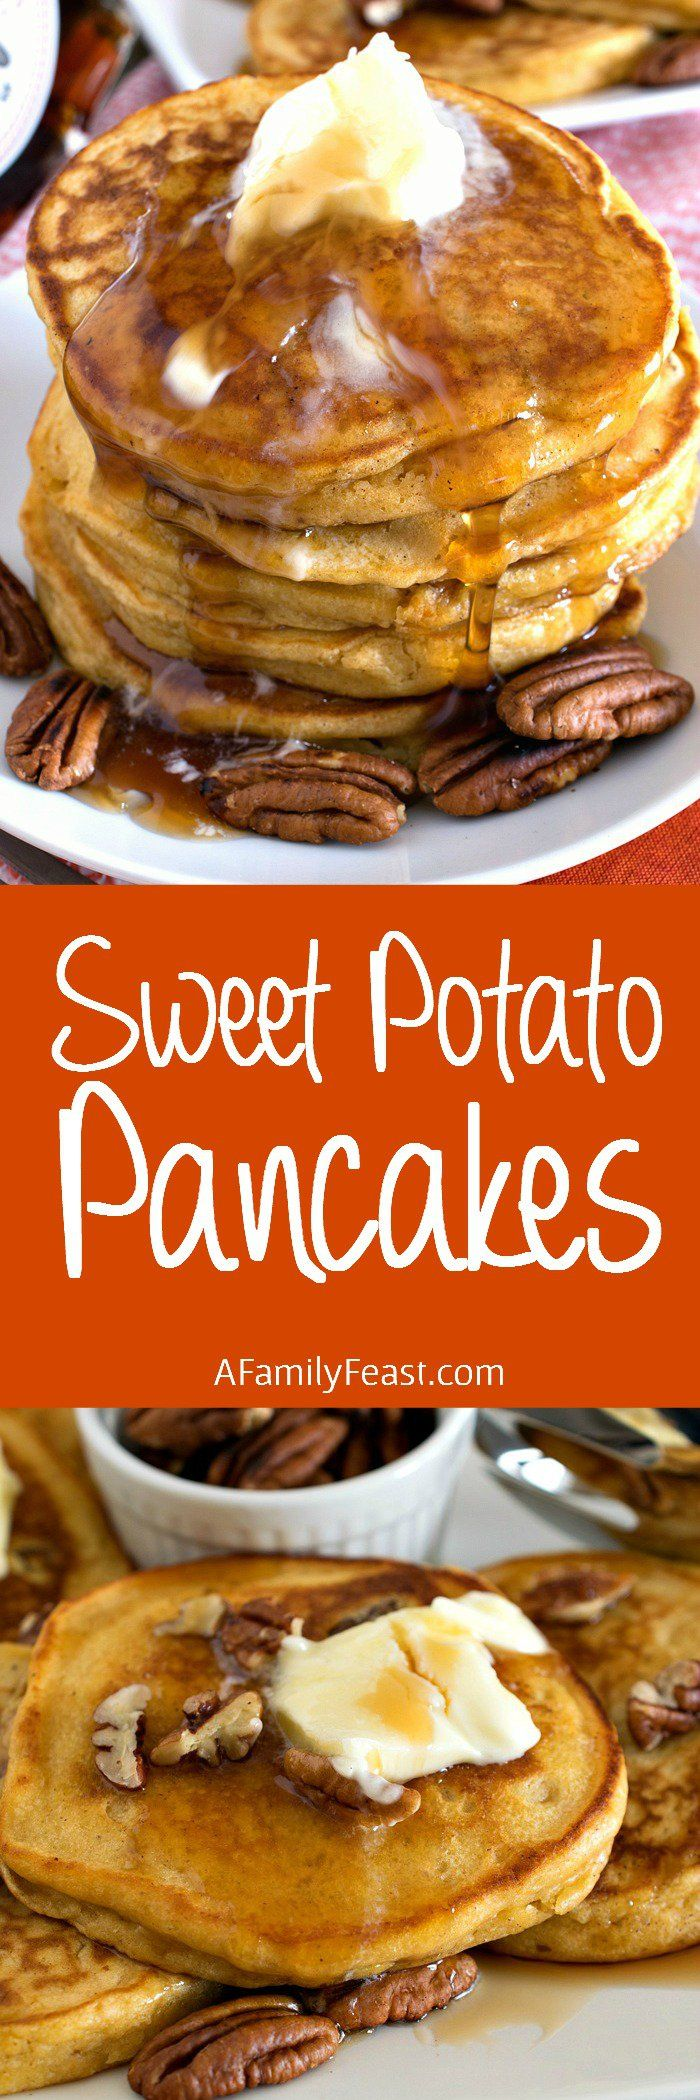 Sweet Potato Pancakes - Made from leftover sweet potato casserole, these delicious pancakes are some of the best pancakes you will ever eat!